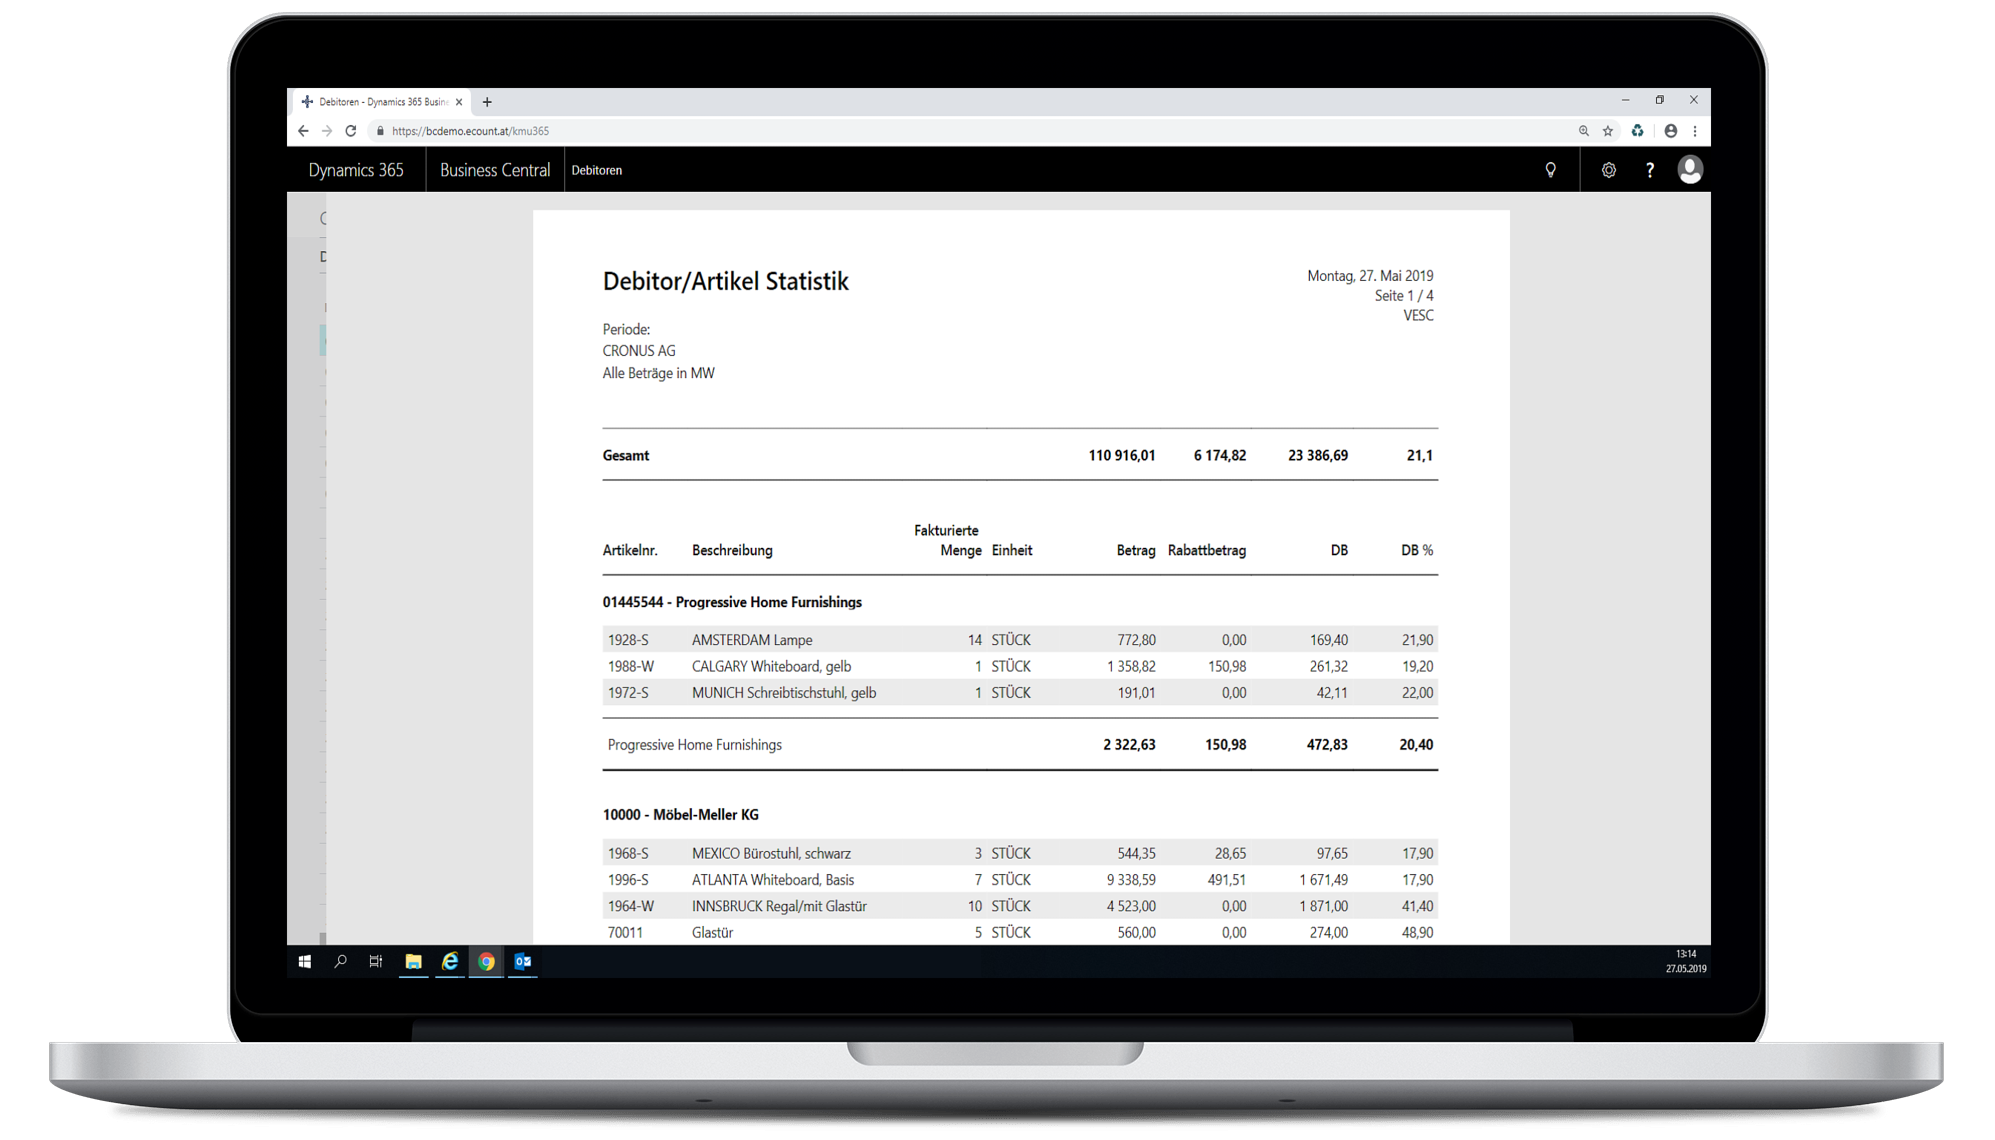 Bericht Debitor/Artikel in eCOUNT Dynamics 365 Business Central